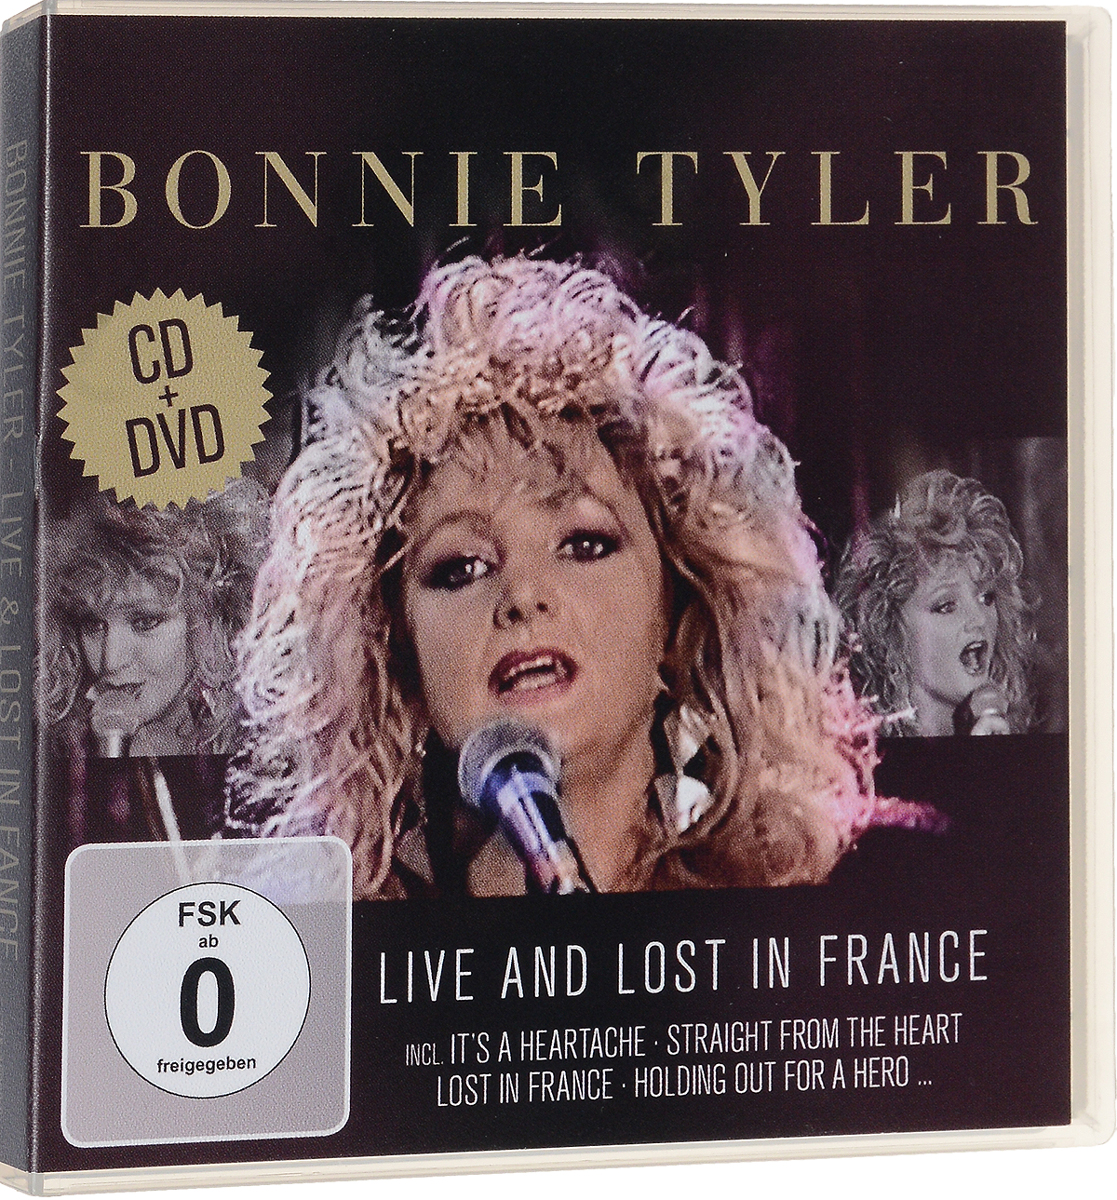 Bonnie Tyler: Live and Lost in France (CD + DVD) cd диск anderson laurie heart of a dog 1 cd